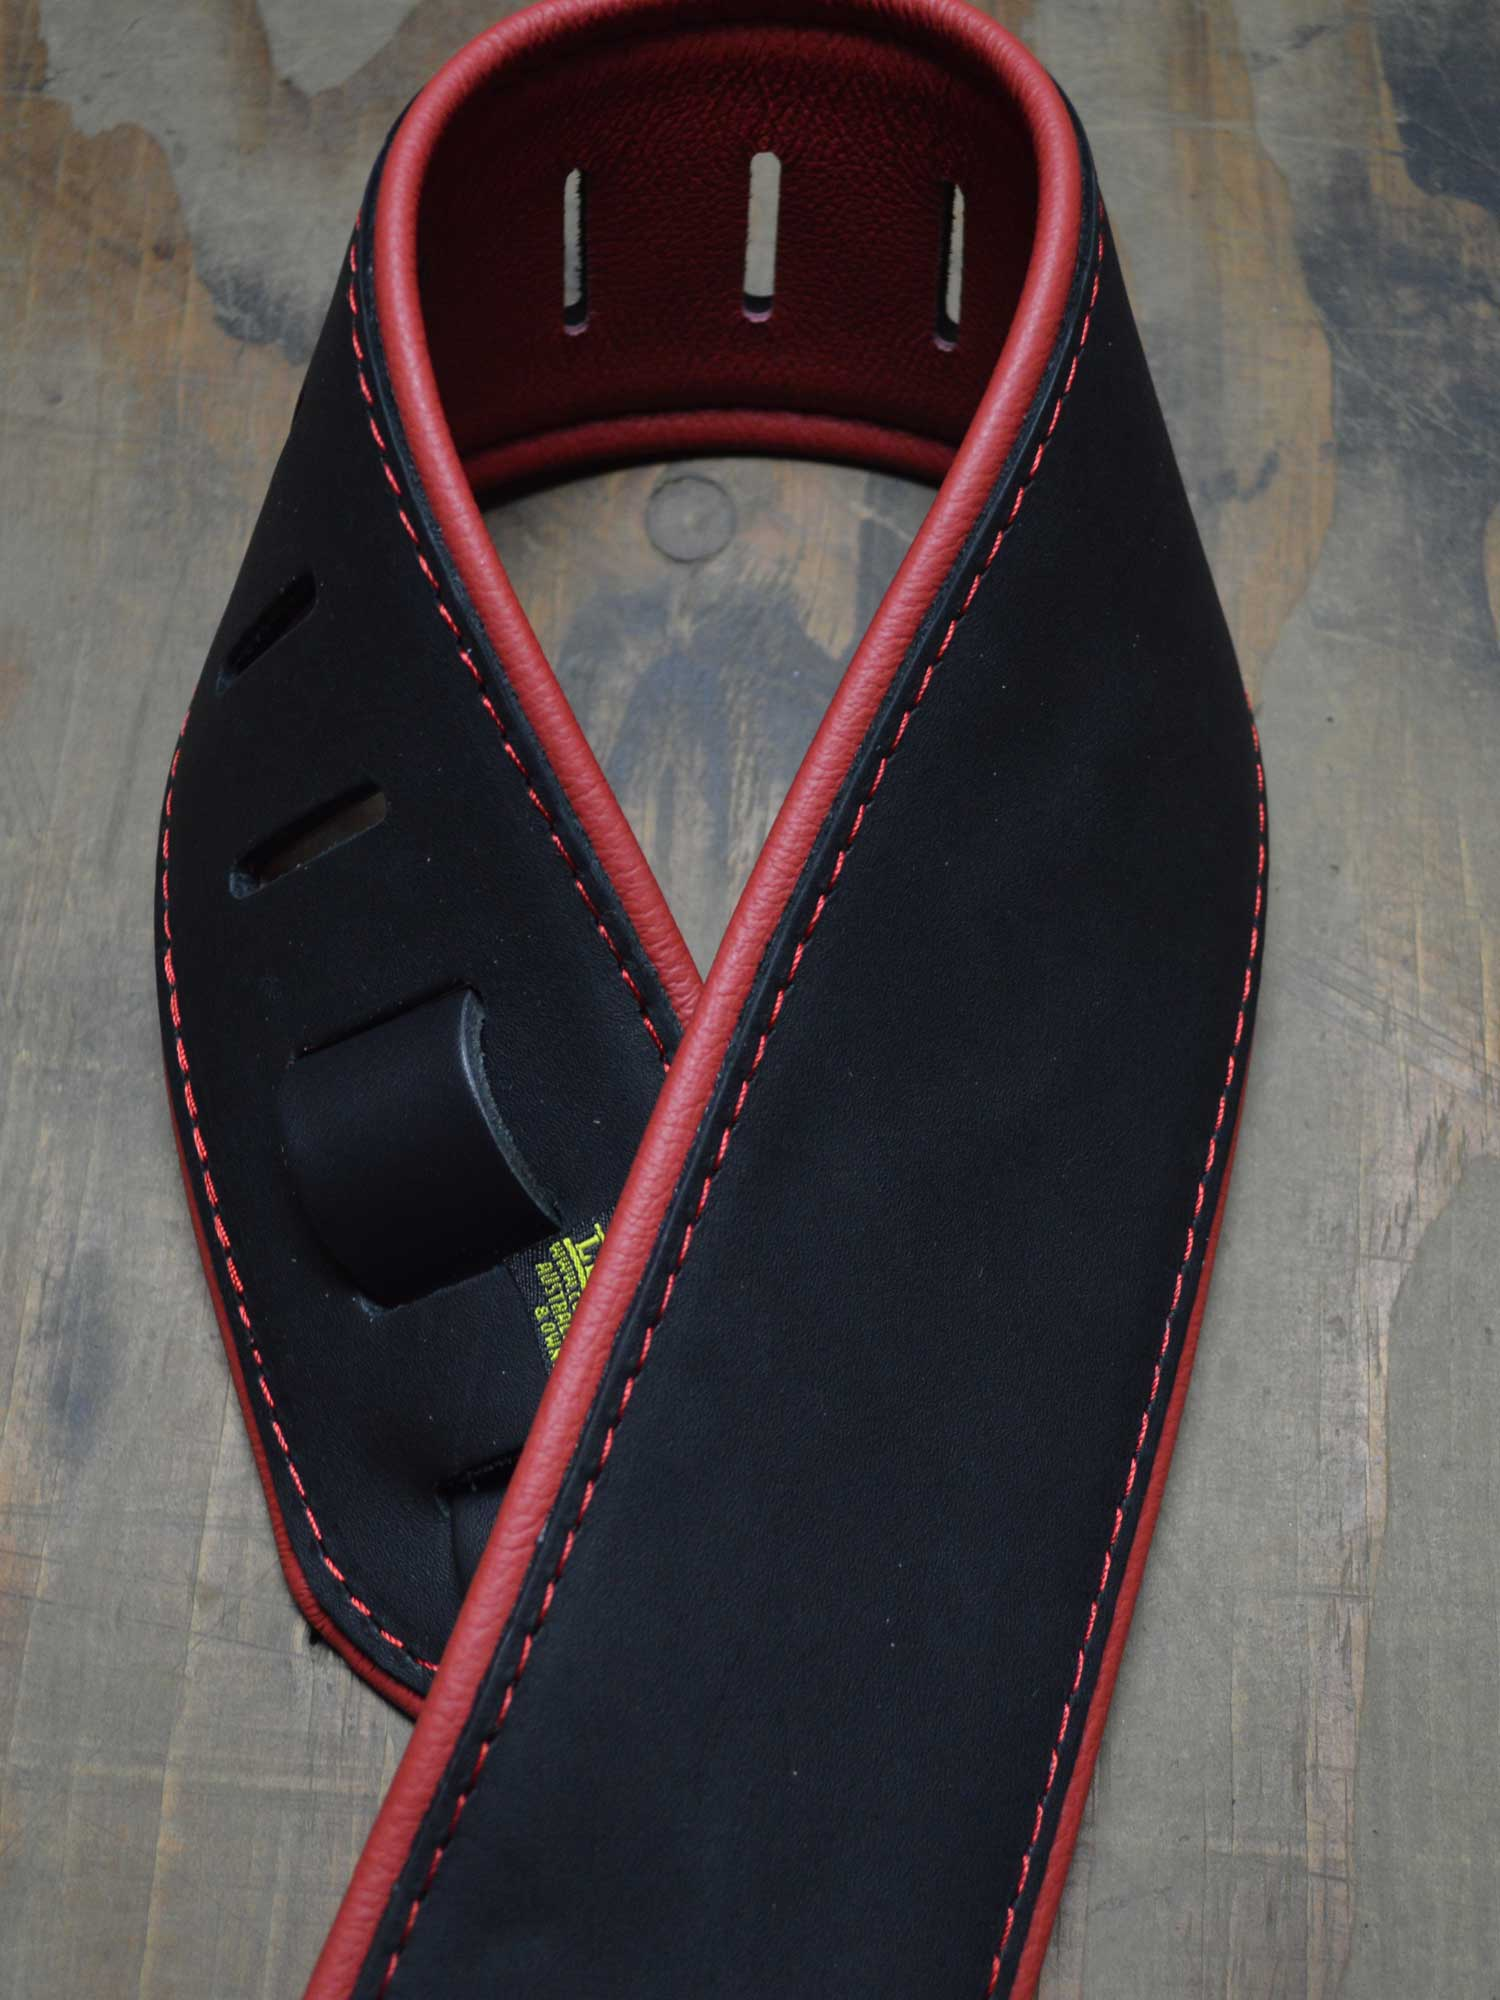 3.0″ Padded Upholstery Leather Guitar Strap Black & Red